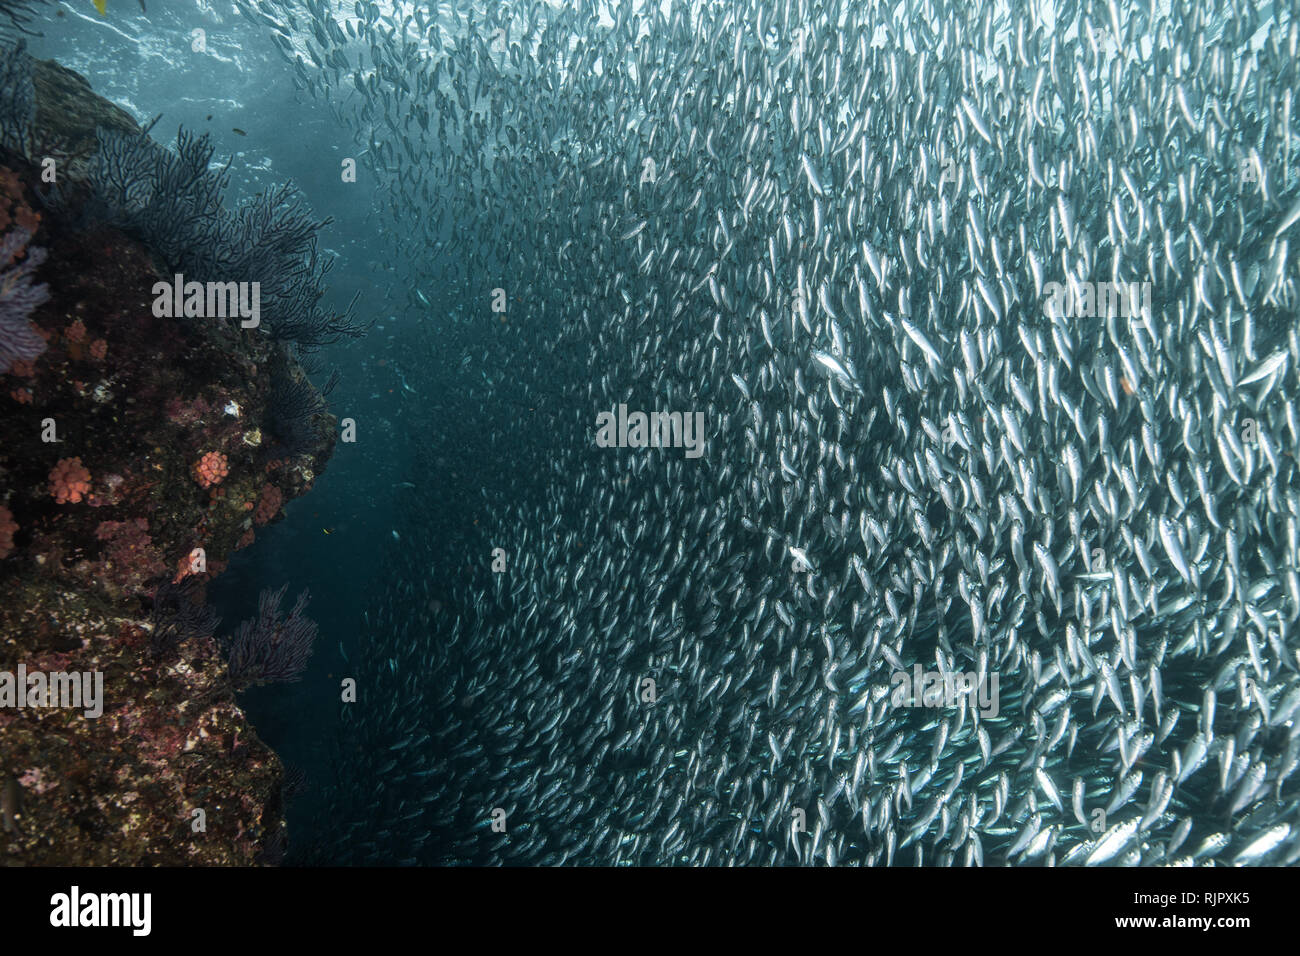 Shoals of sardine being hunted by red snappers - Stock Image